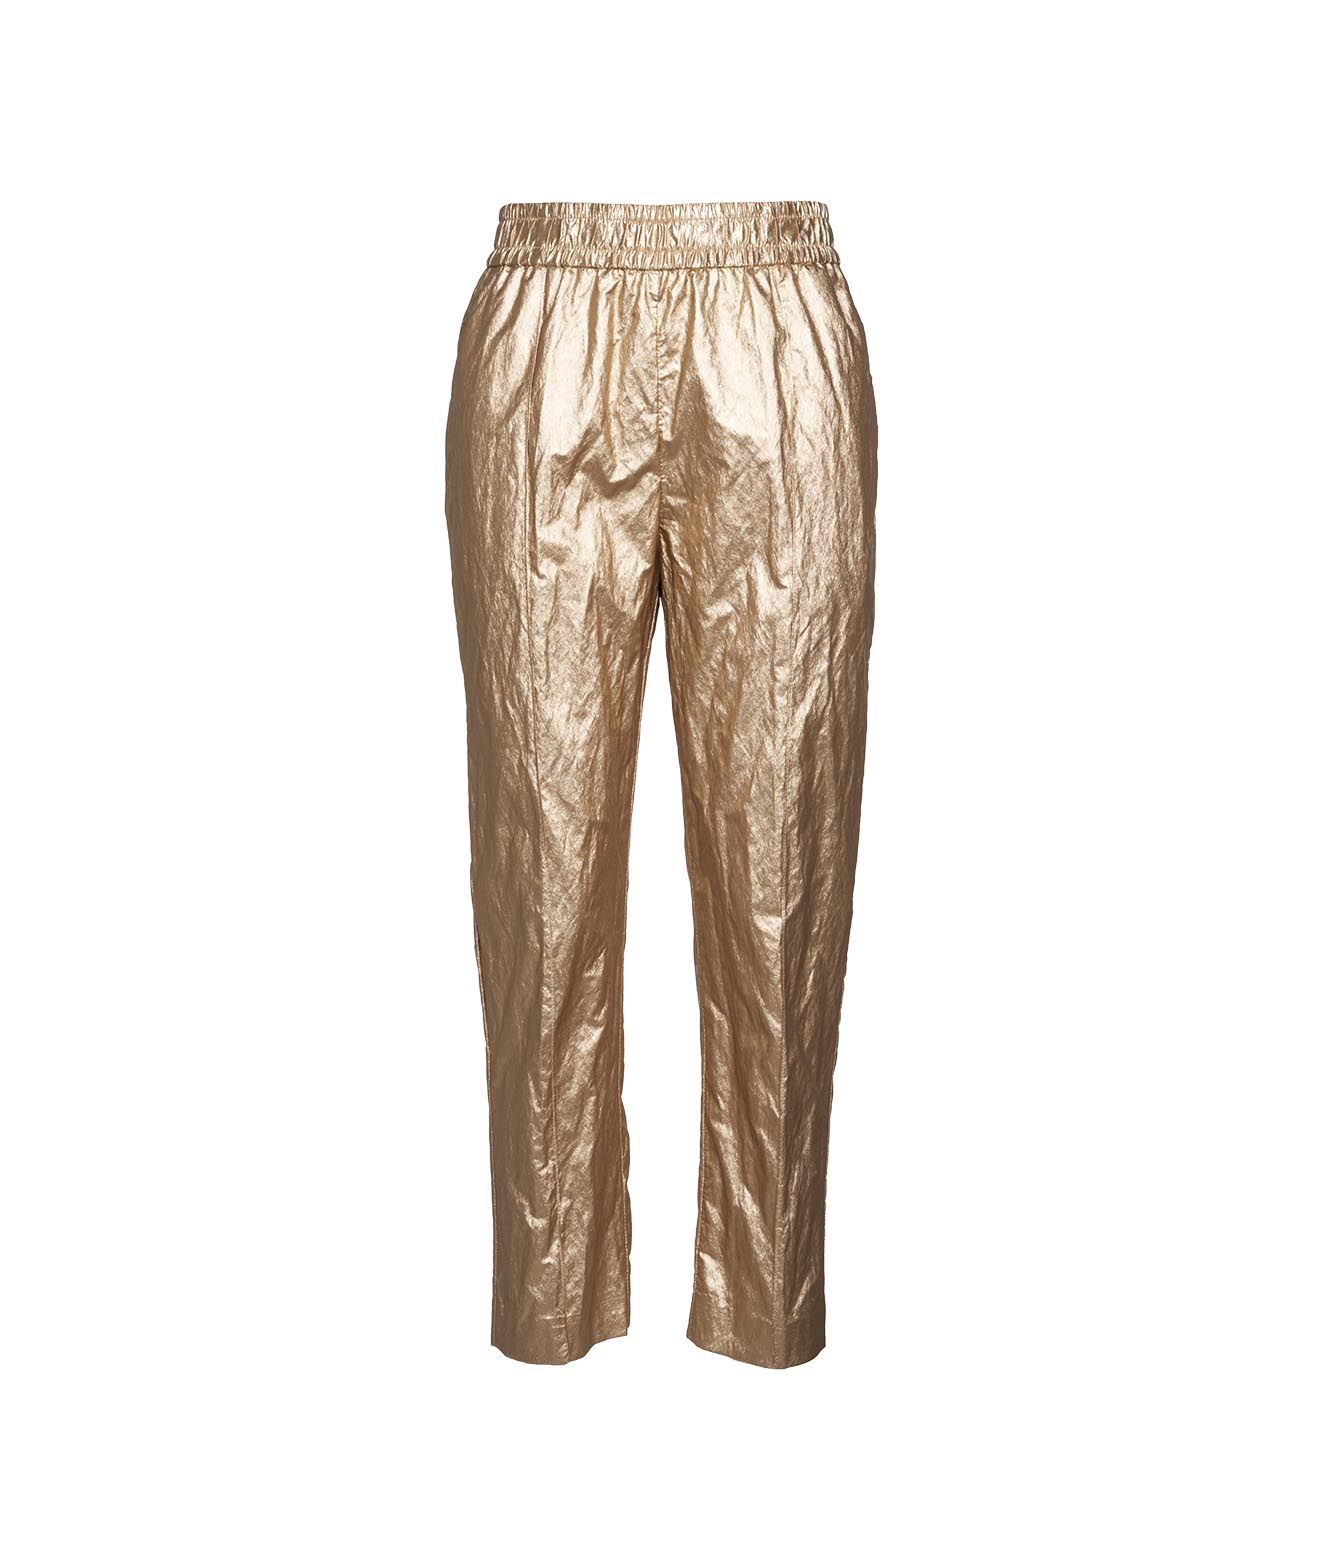 Nude ECO-LEATHER TROUSERS